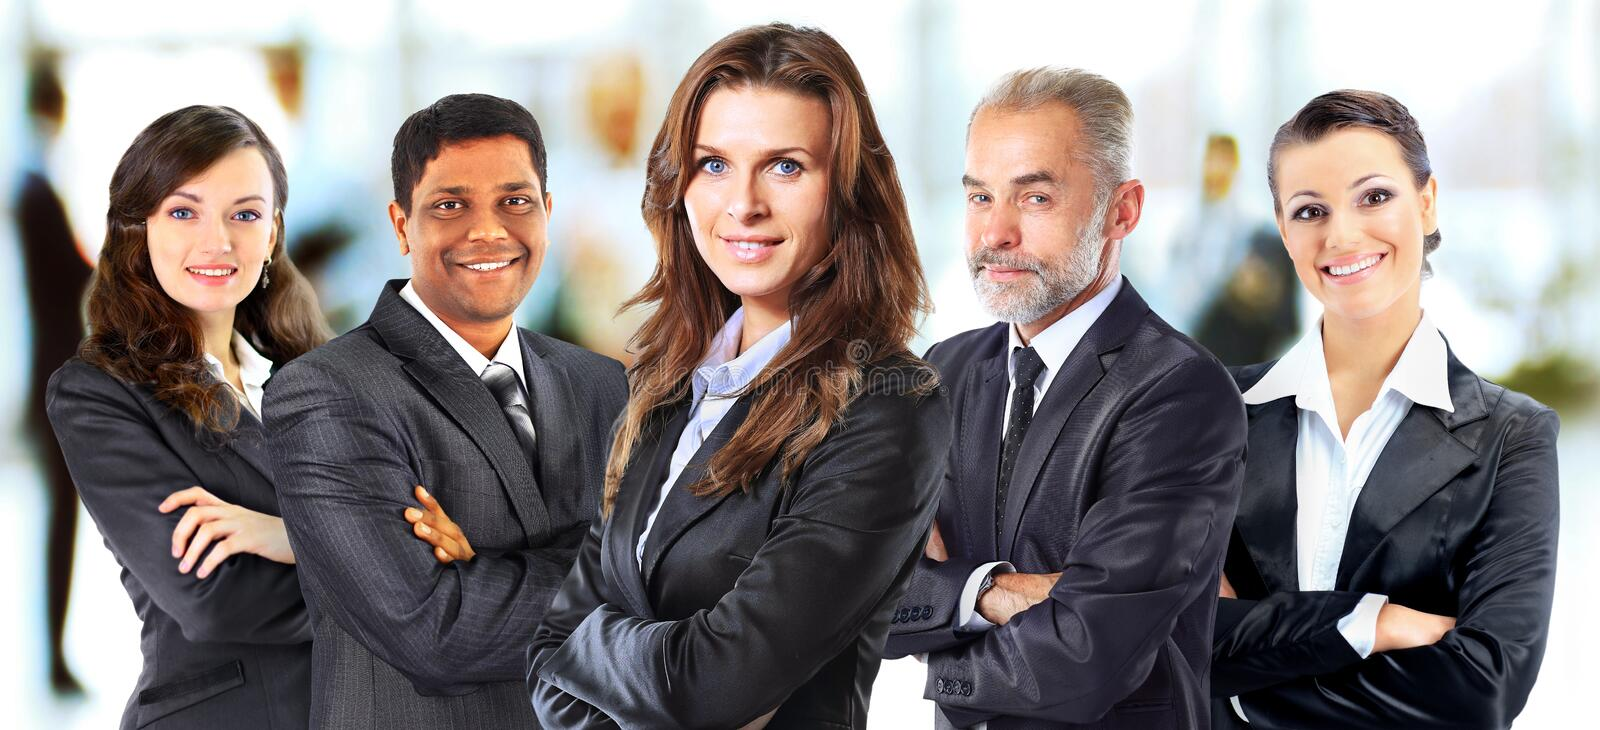 Successful group of business people stock photos